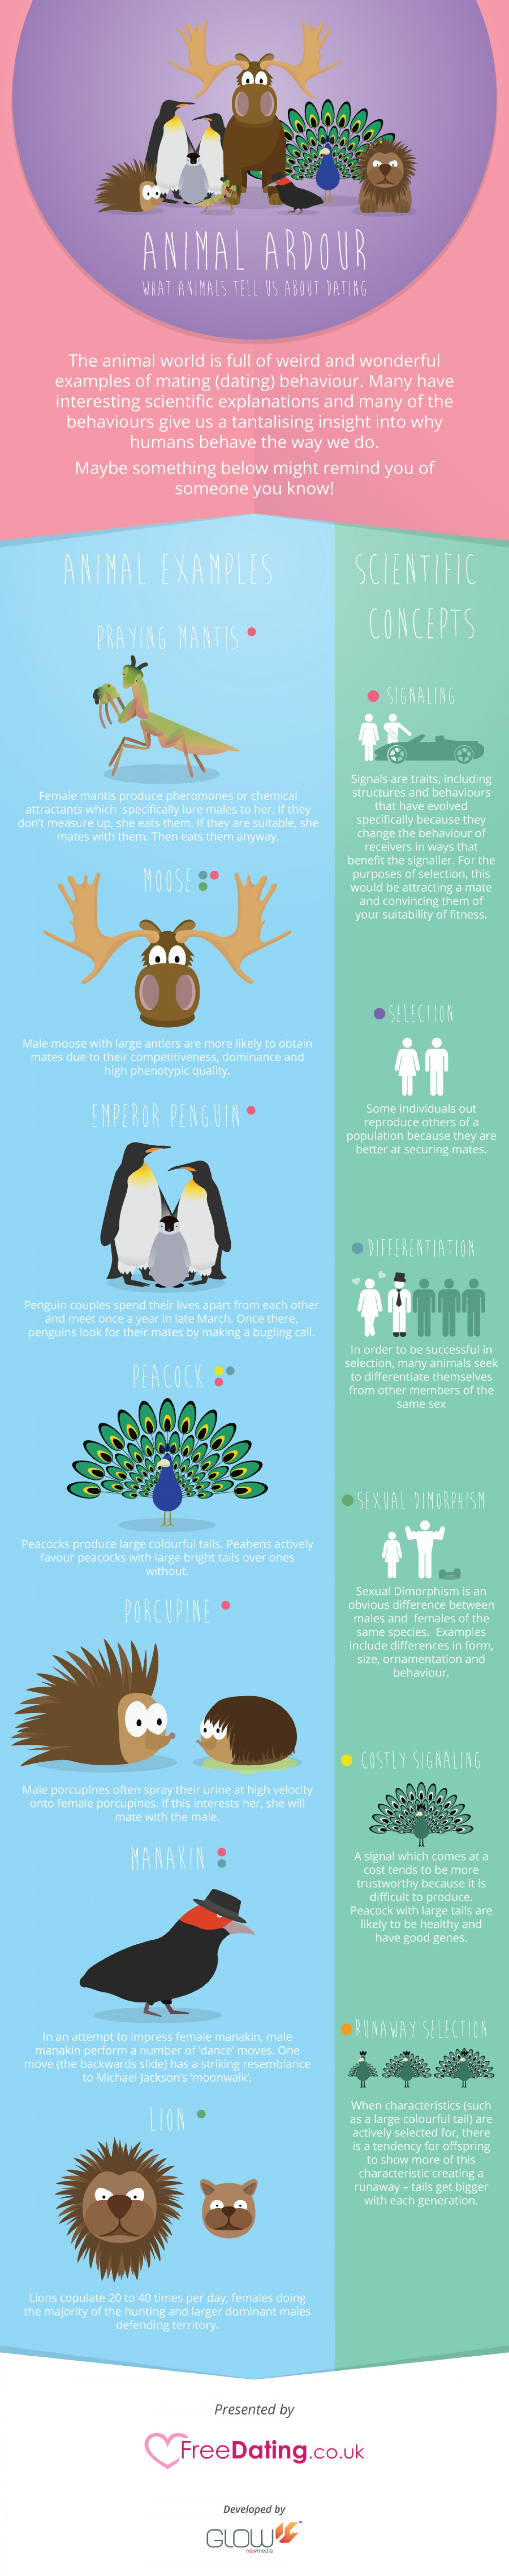 Strange Mating Facts About Animals